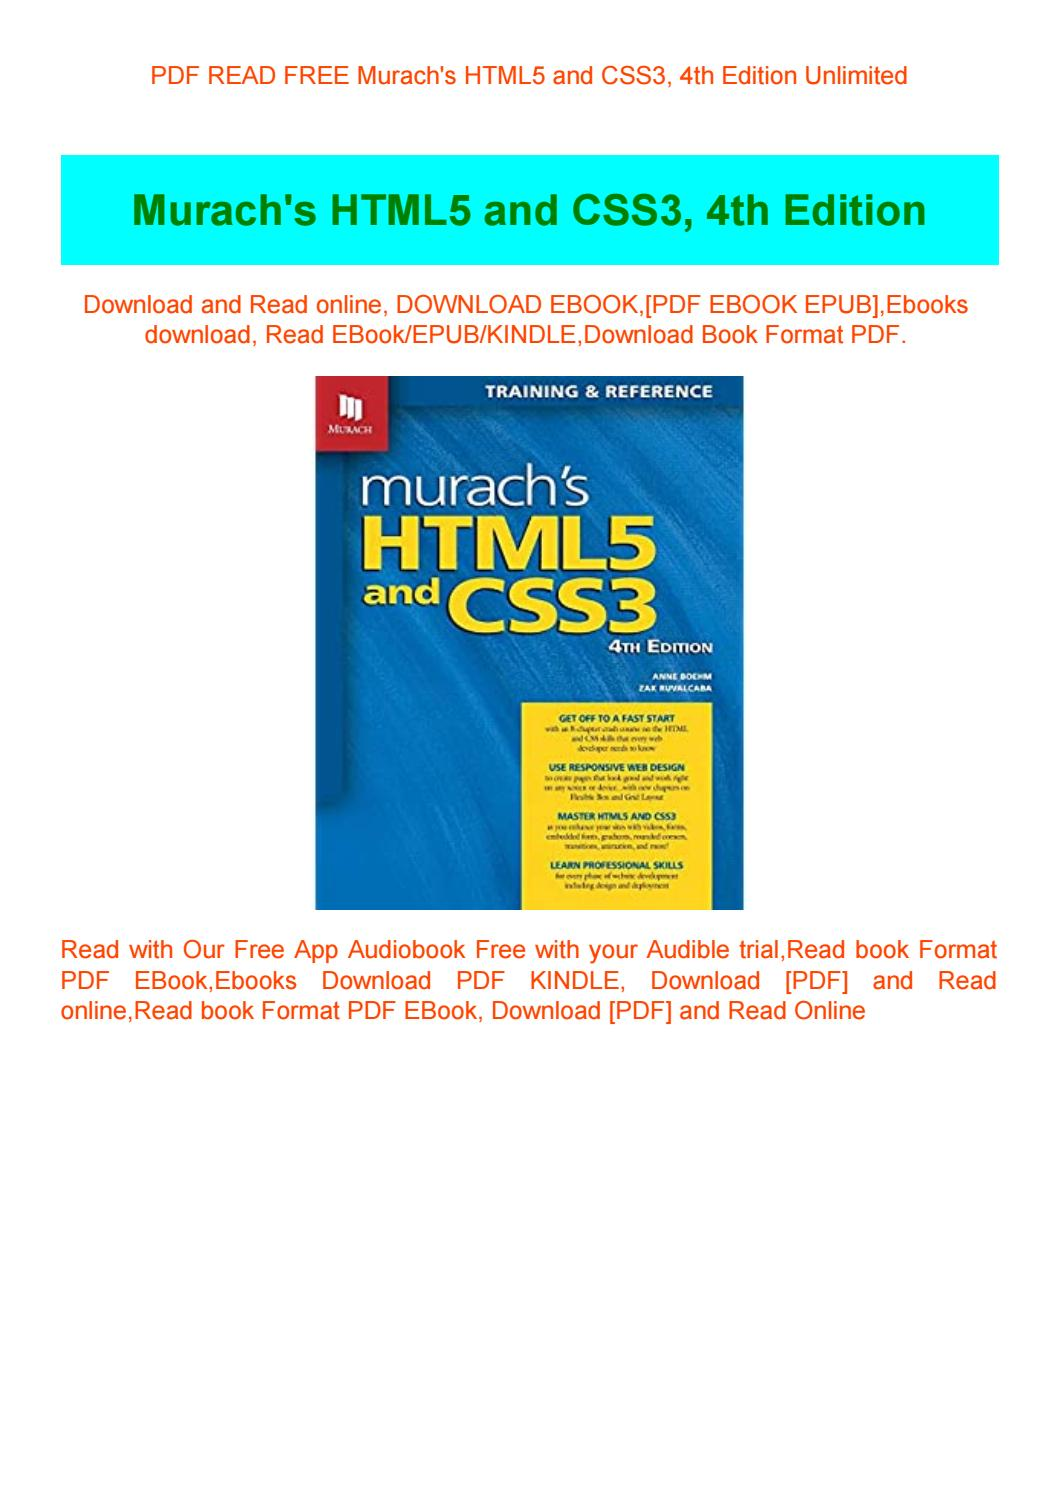 Pdf Read Free Murach S Html5 And Css3 4th Edition Unlimited By Anayamor Issuu